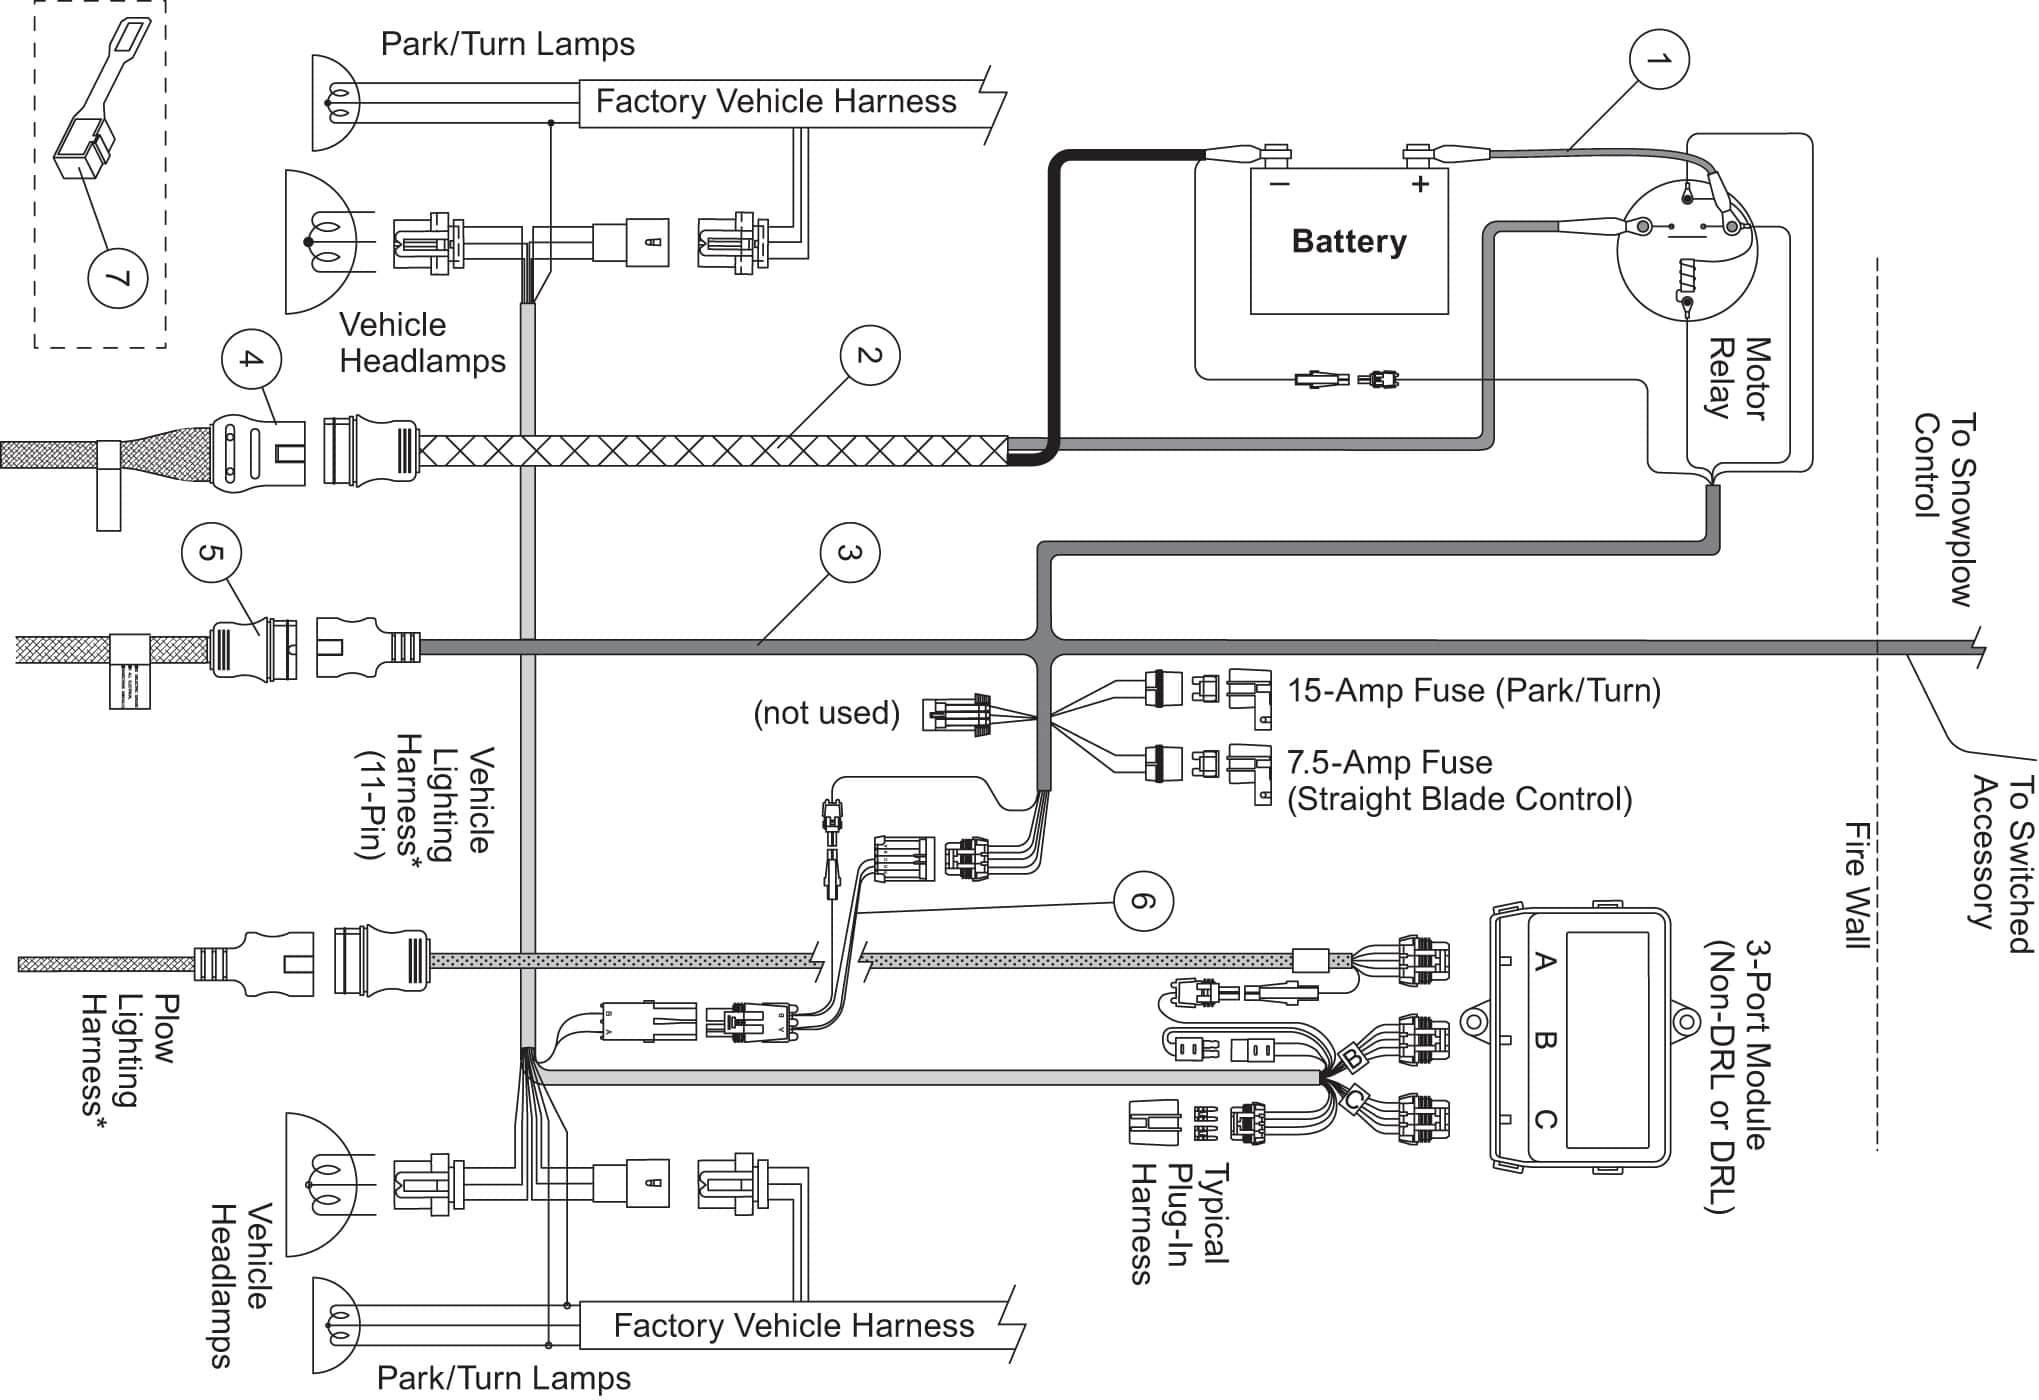 Western Snow Plow Pump Diagram | Wiring Diagram - Western Snow Plows Wiring Diagram